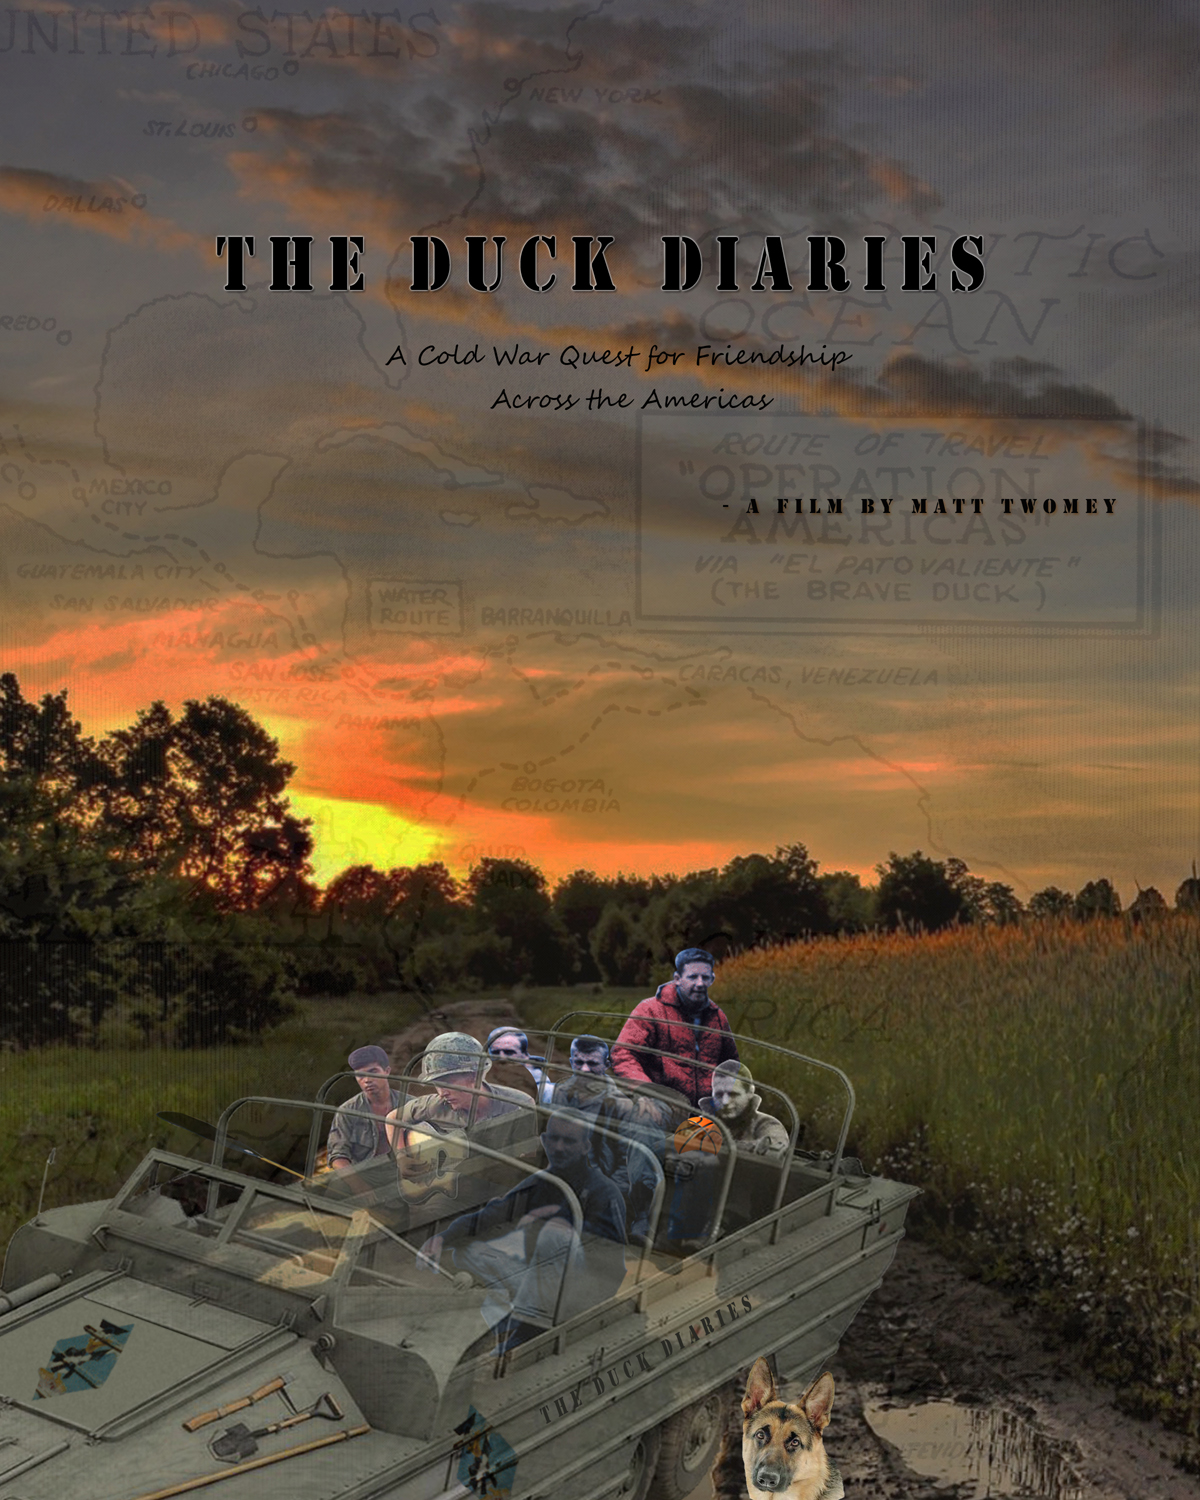 Poster design documentary - Poster Design By Simi For Documentary Film Poster The Duck Diaries Design